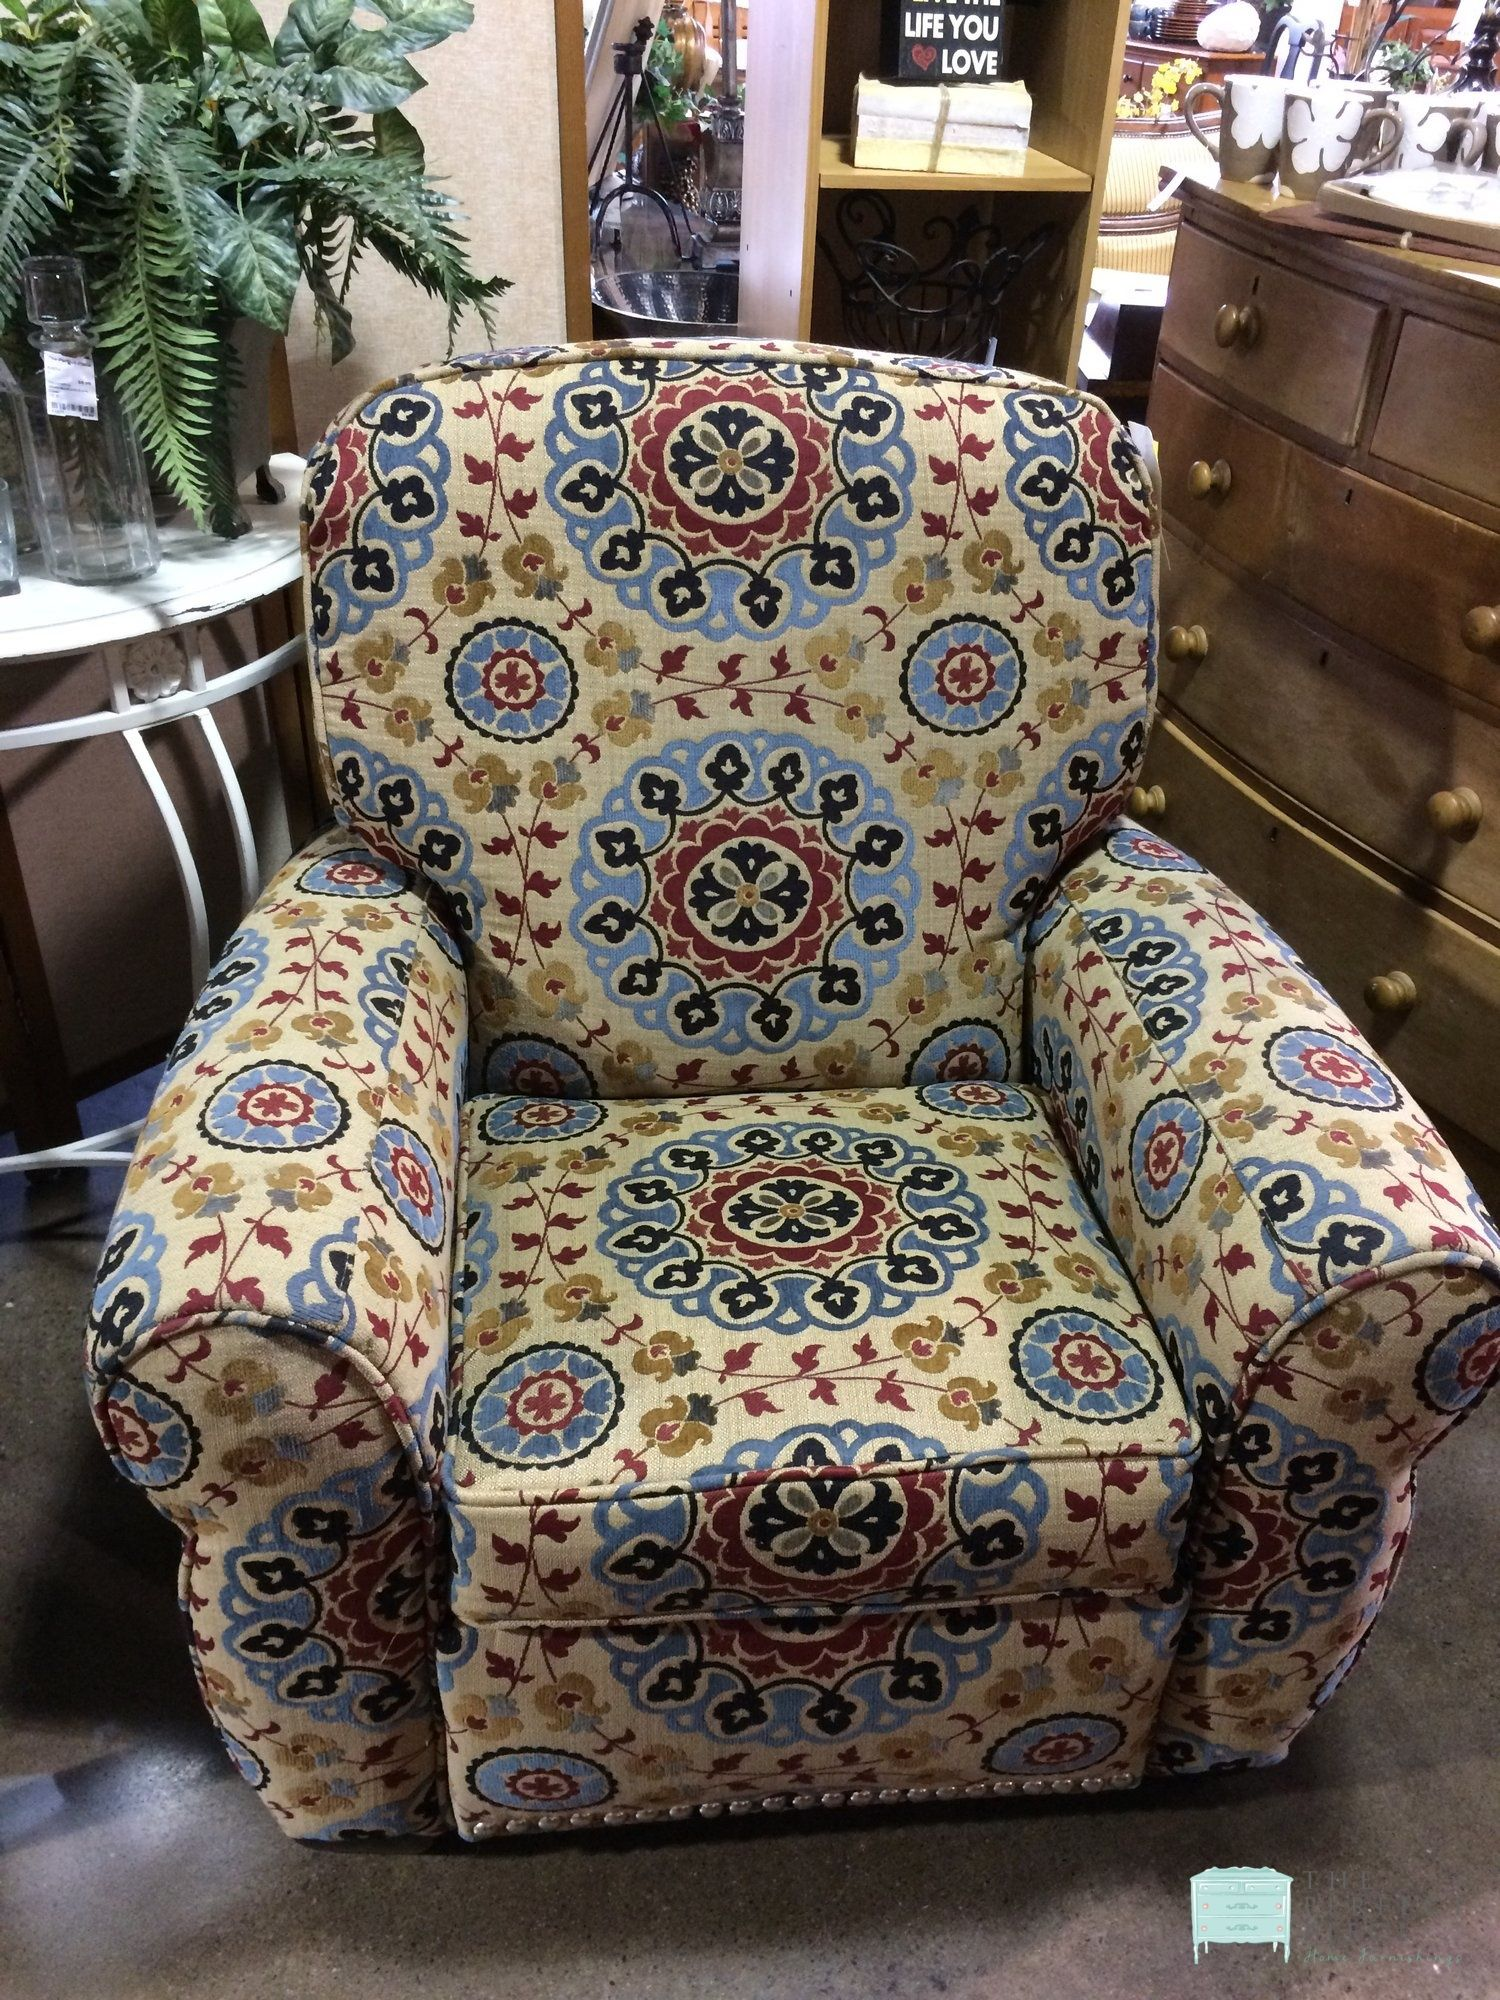 This Beautiful Lazyboy Recliner Would Be An Awesome Accent Chair